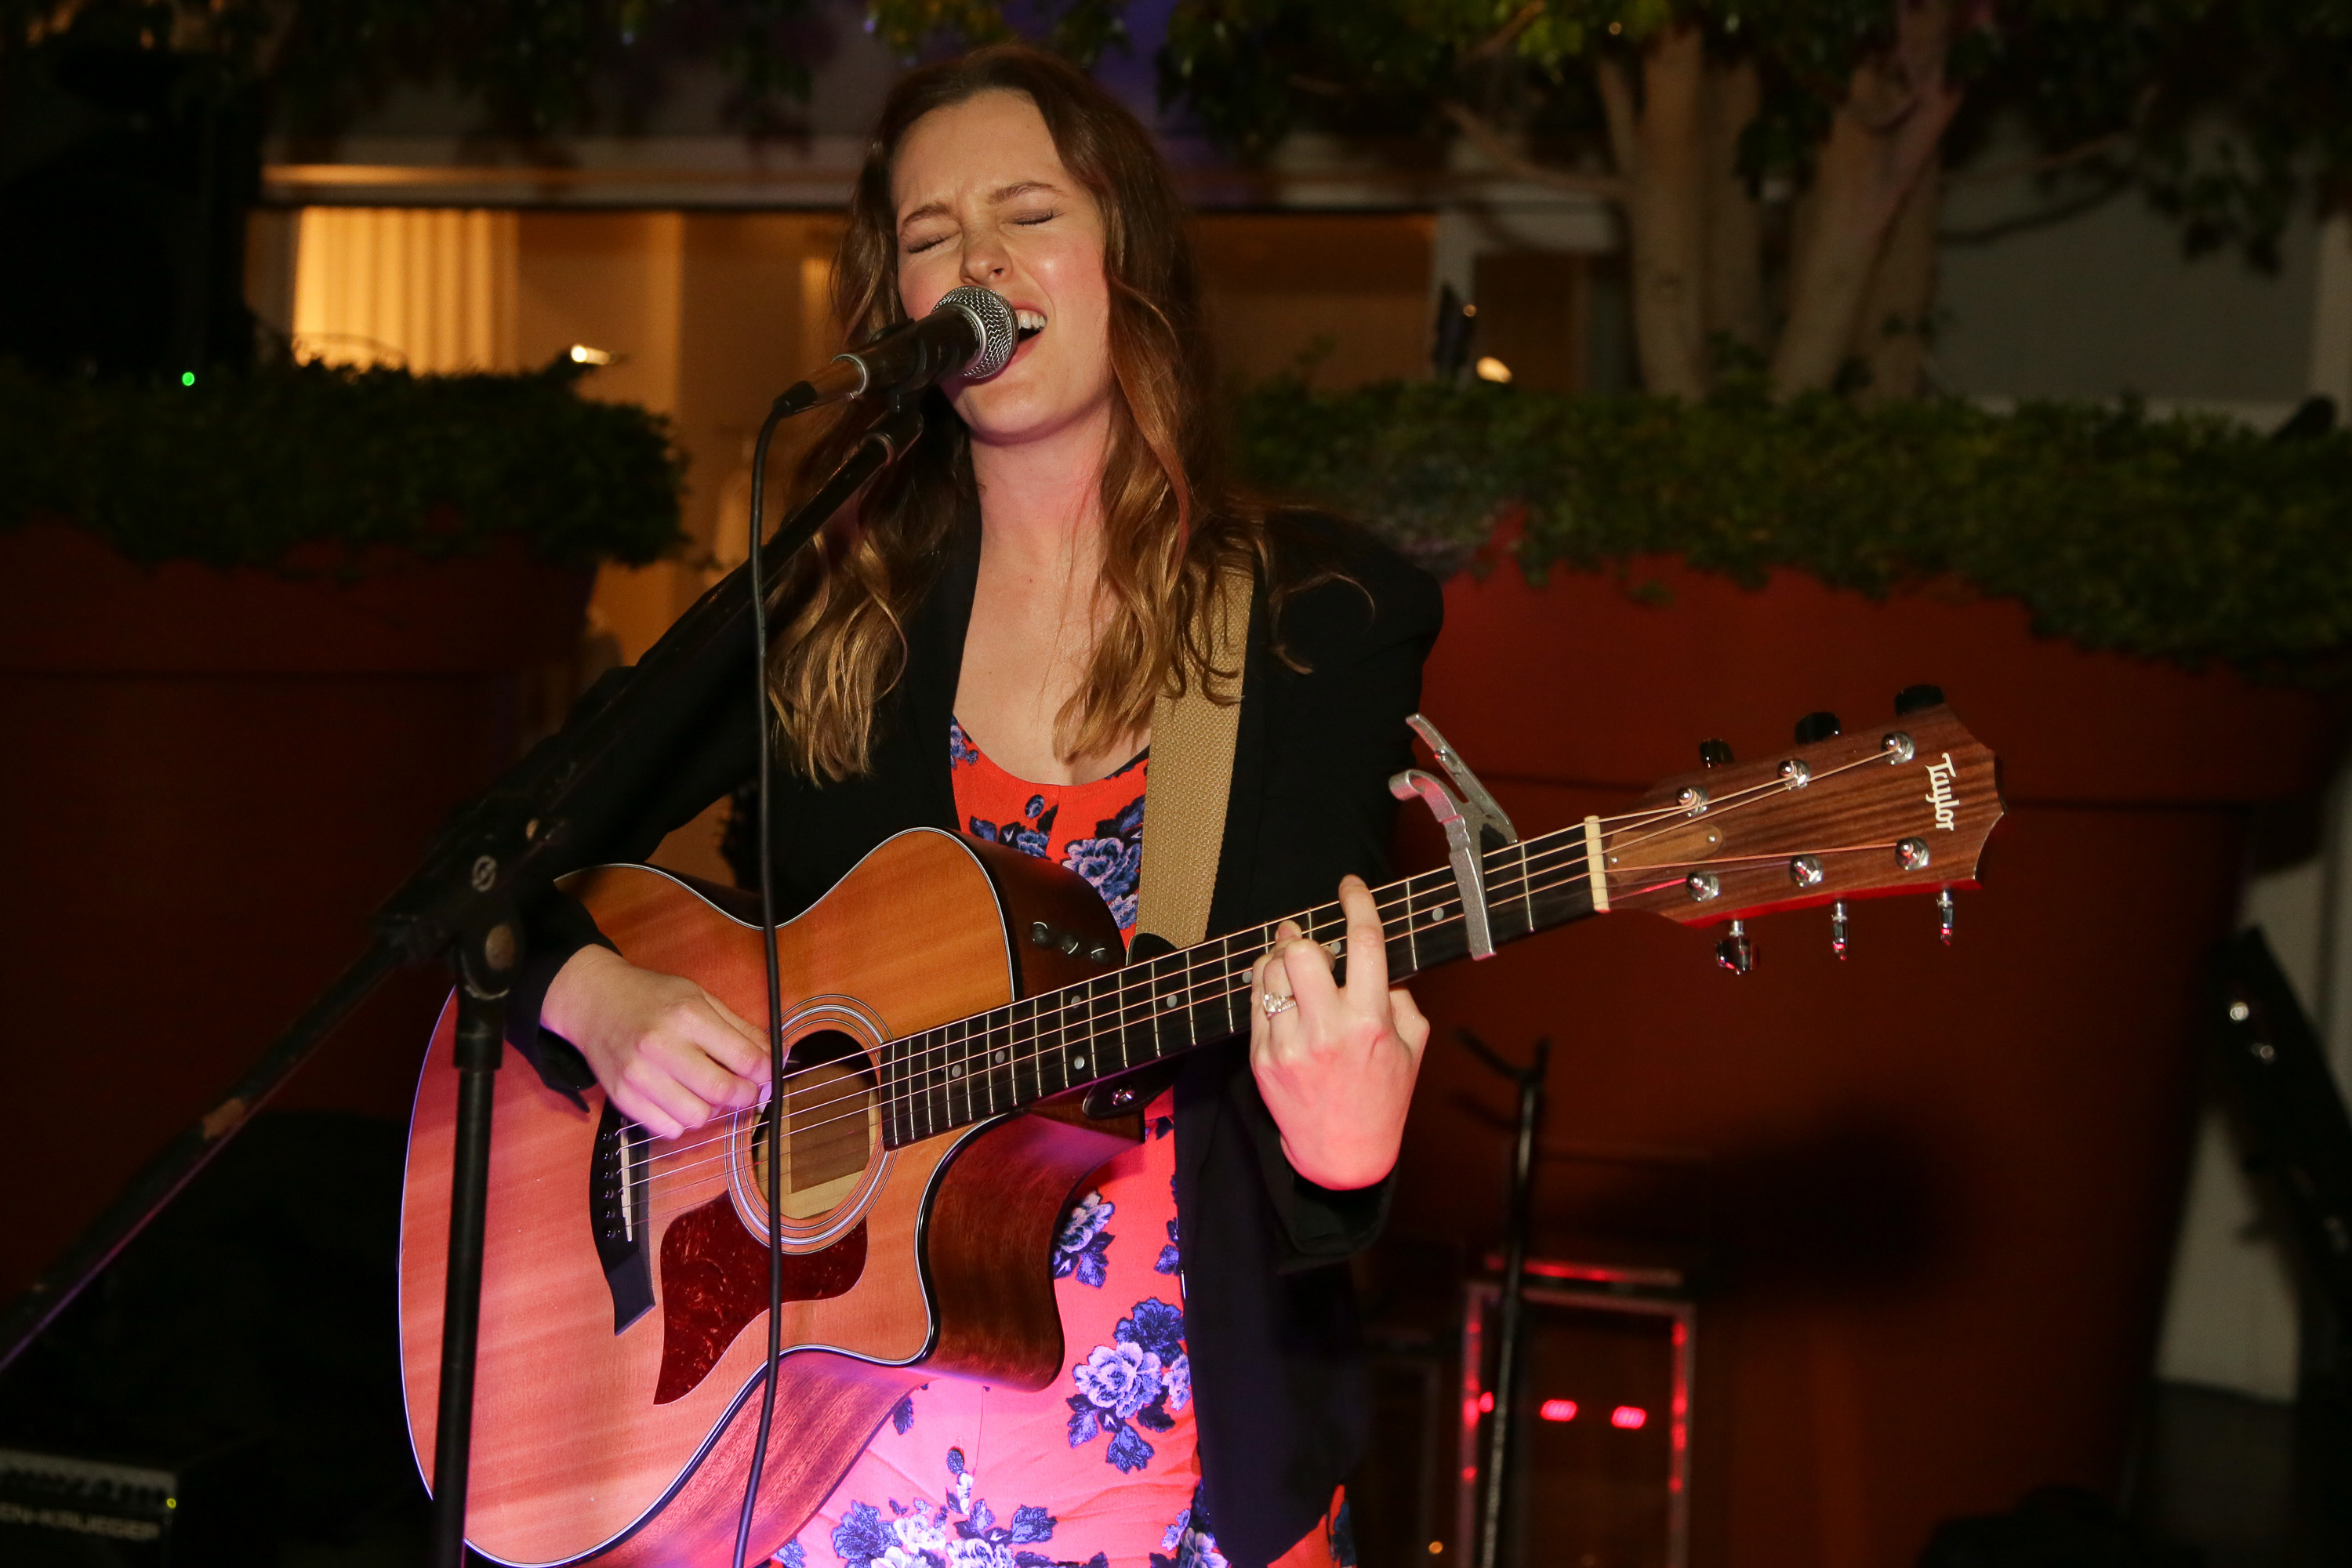 Leighton Meester performs at the Full Moon Bazaar benefiting ManyHopes.org at SkyBar at the Mondrian Los Angeles in West Hollywood, Calif., on April 2, 2015.